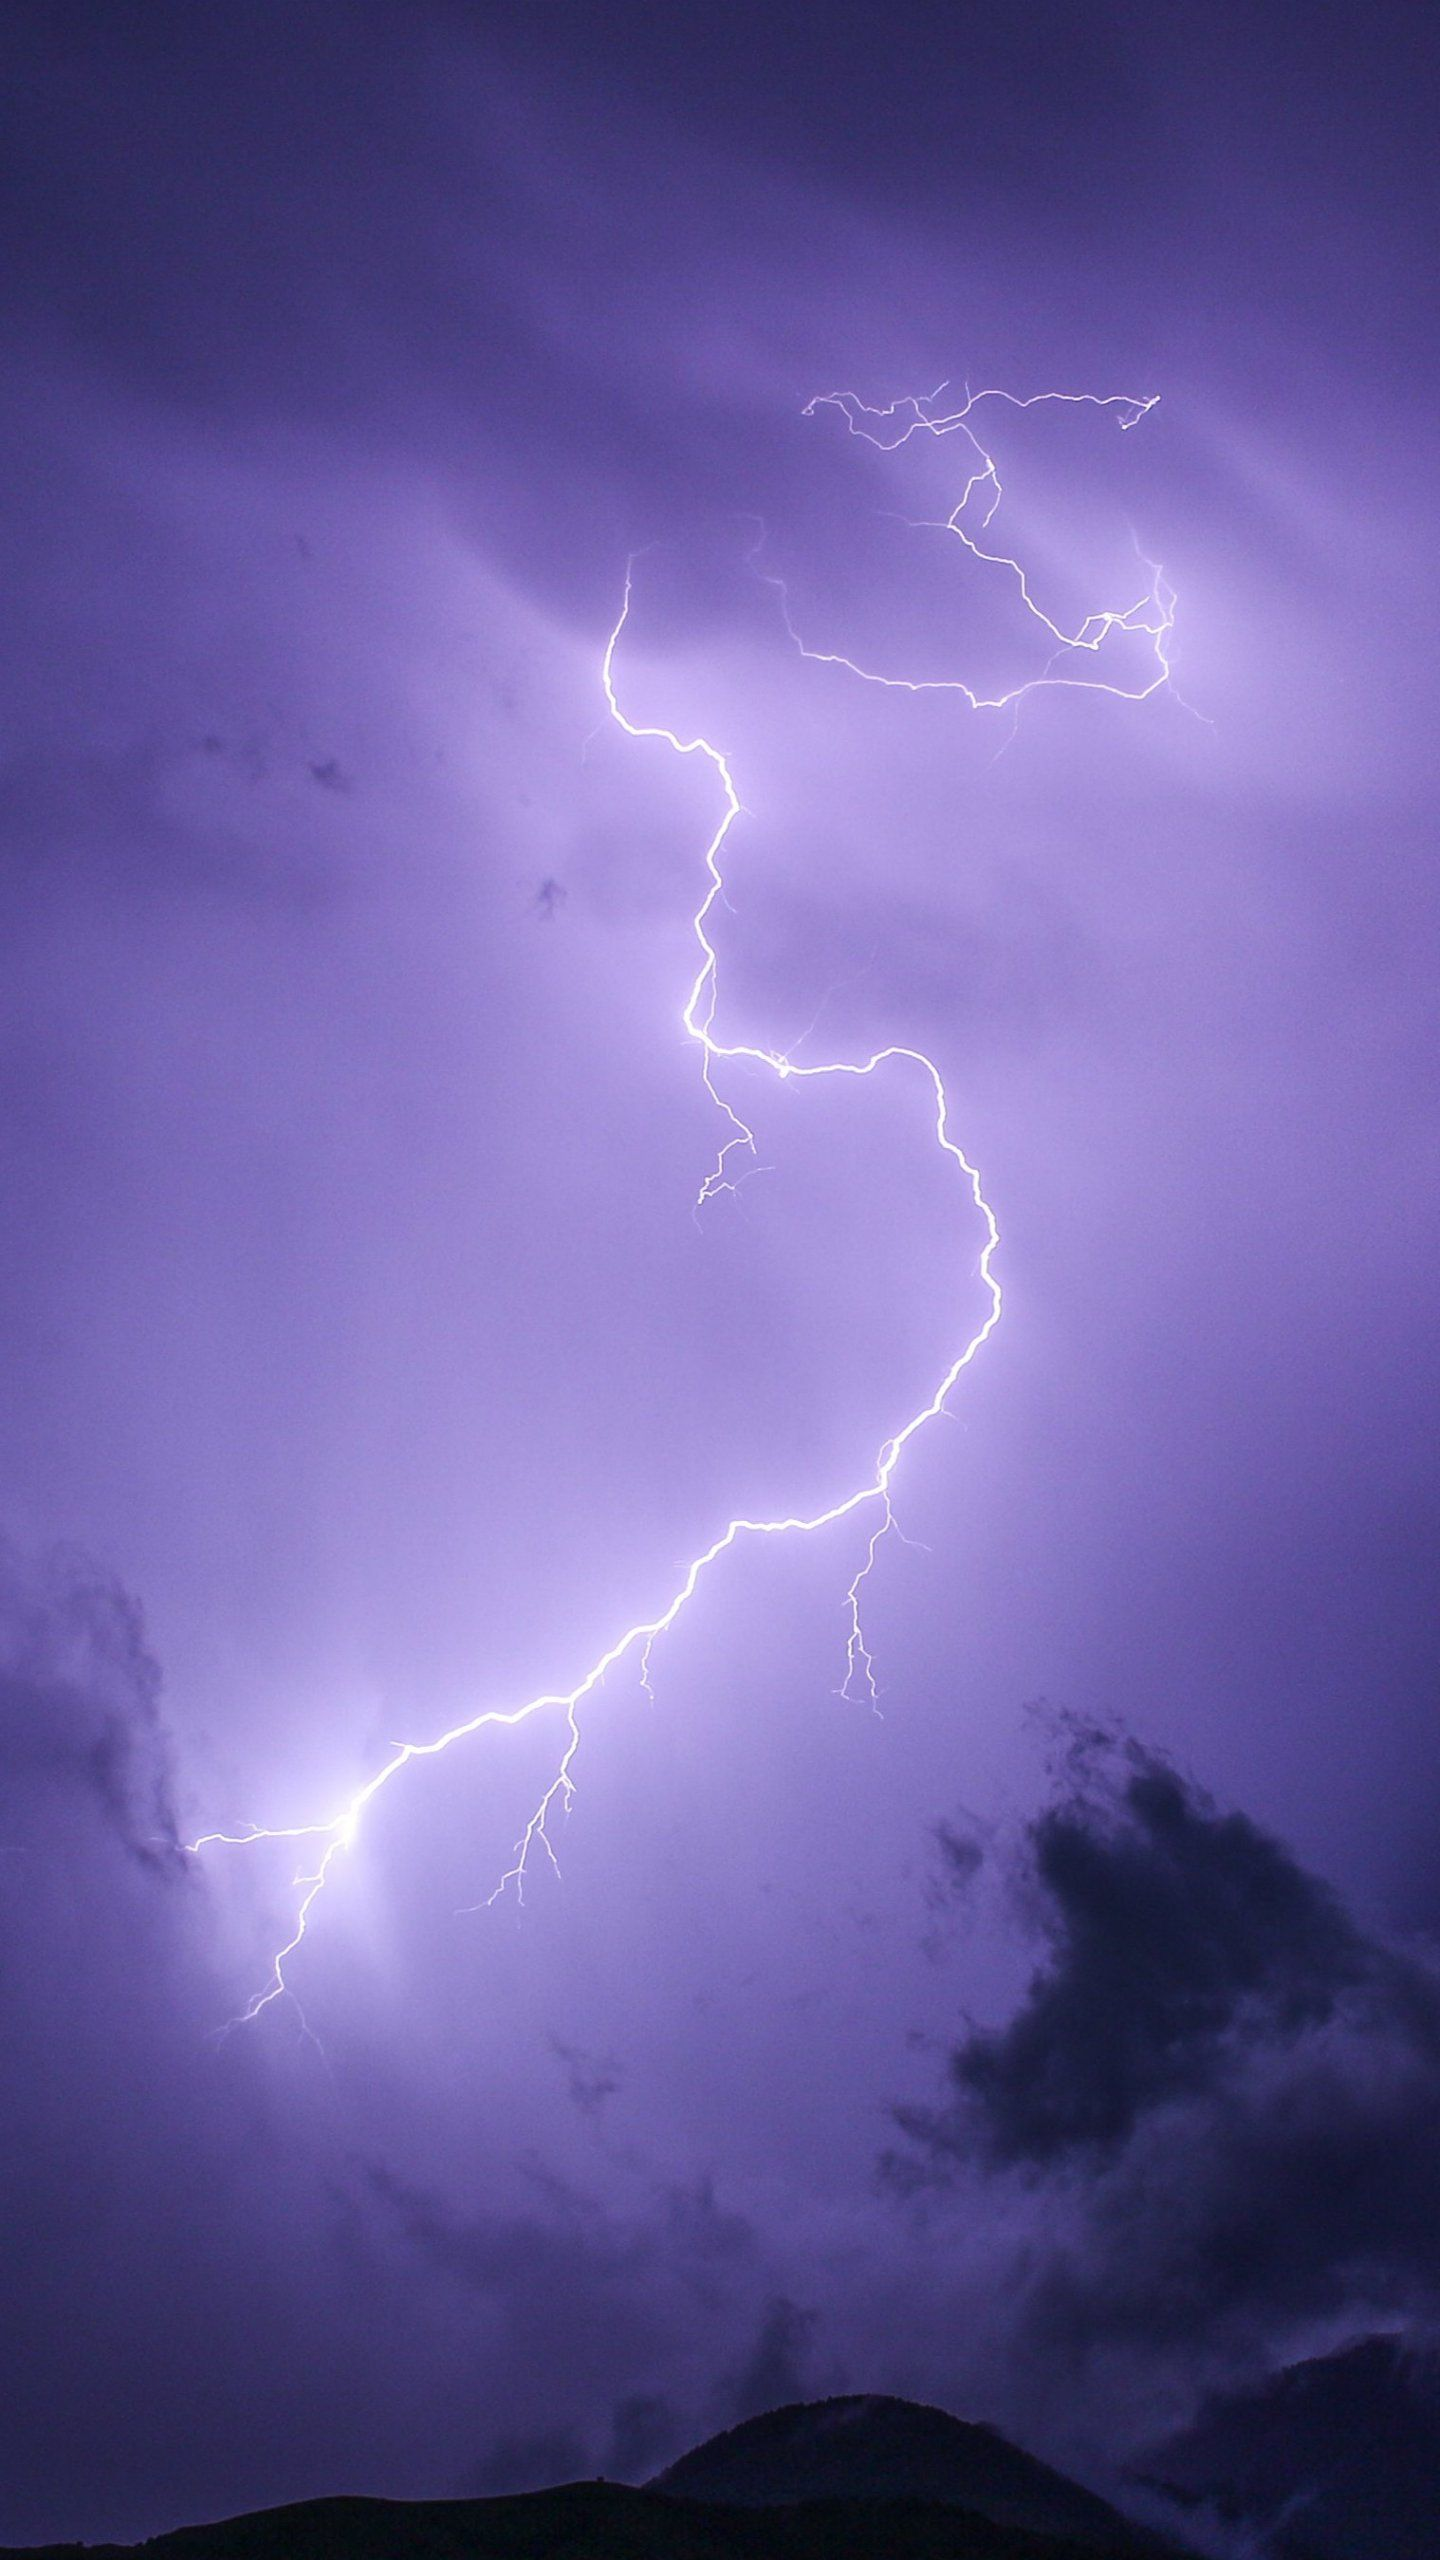 Purple Lightning Wallpaper - iPhone, Android & Desktop Backgrounds